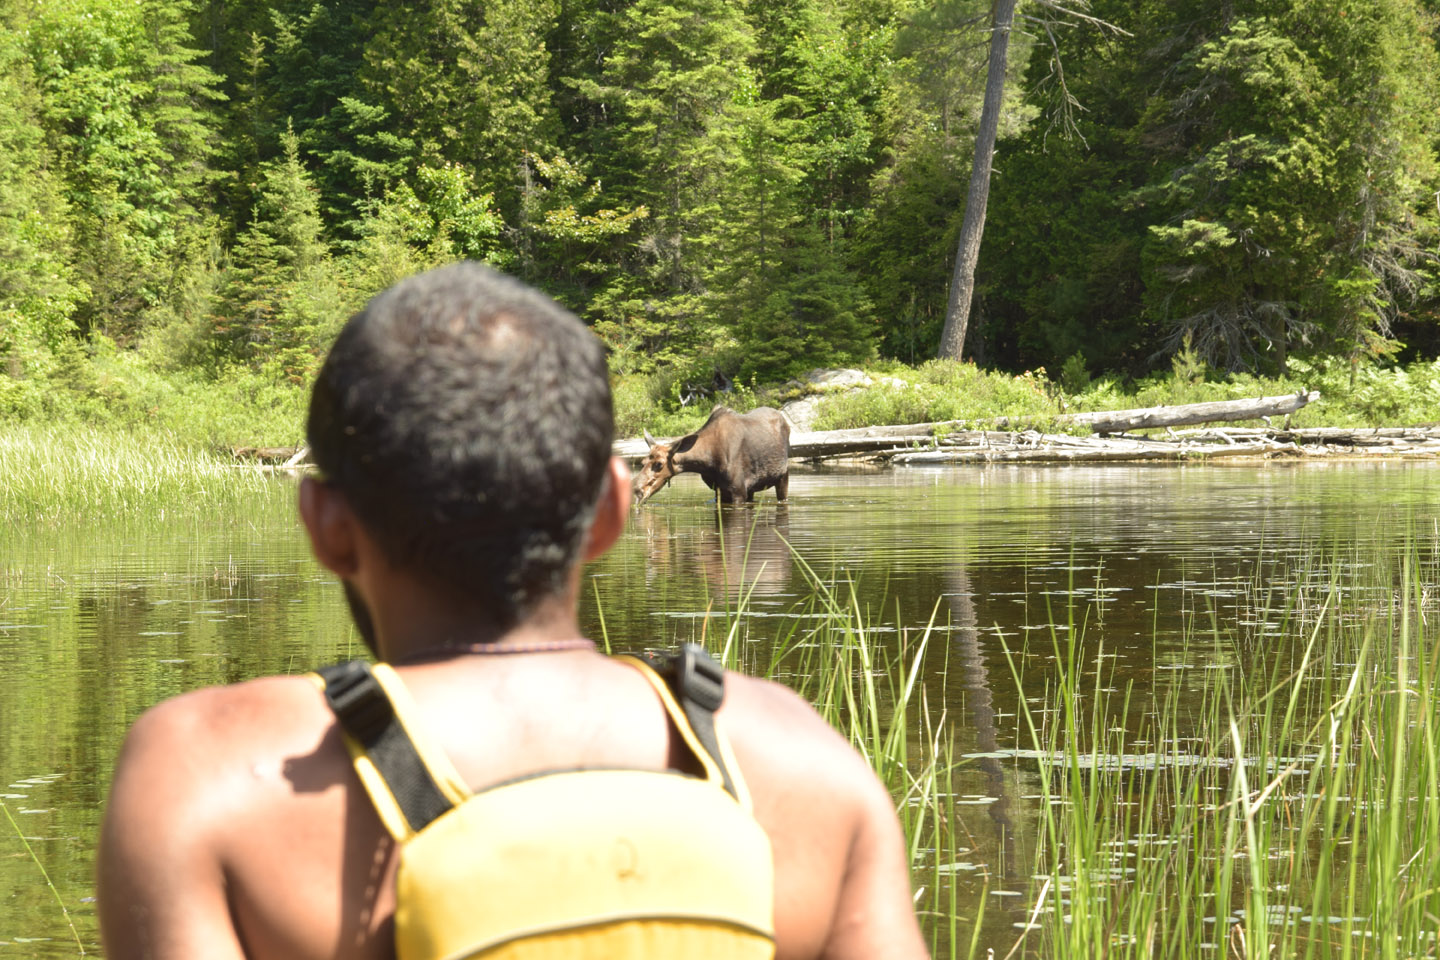 Cyril Francis coming across a moose in Algonquin Park